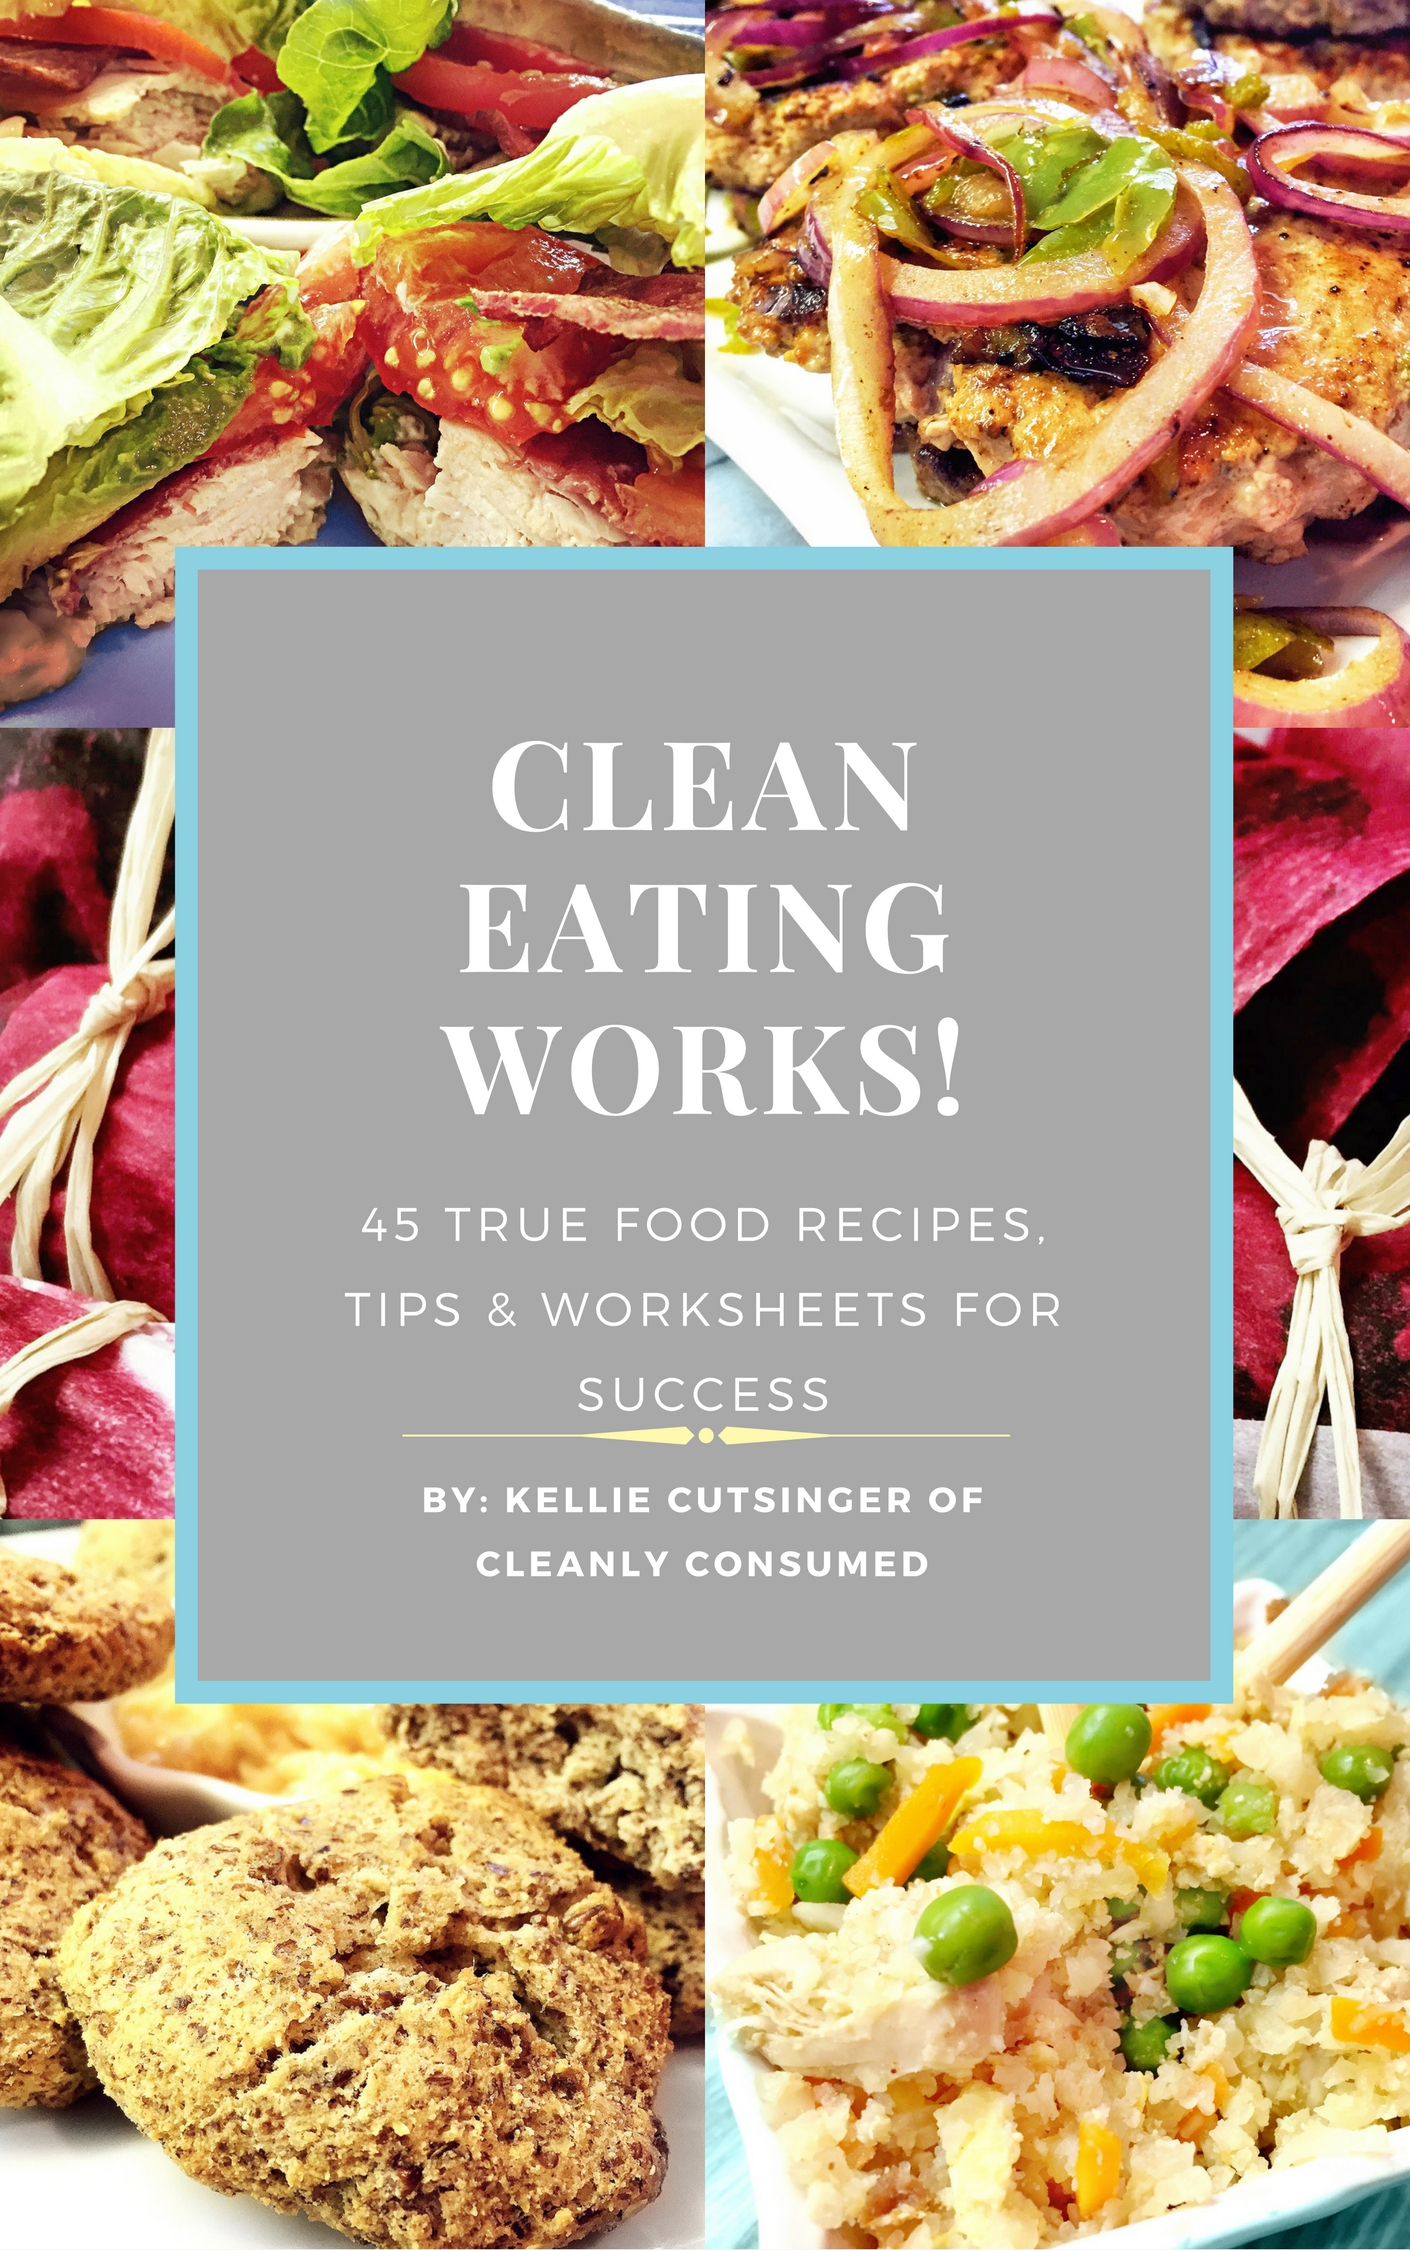 Clean Eating Works! eBook Cleanly Consumed